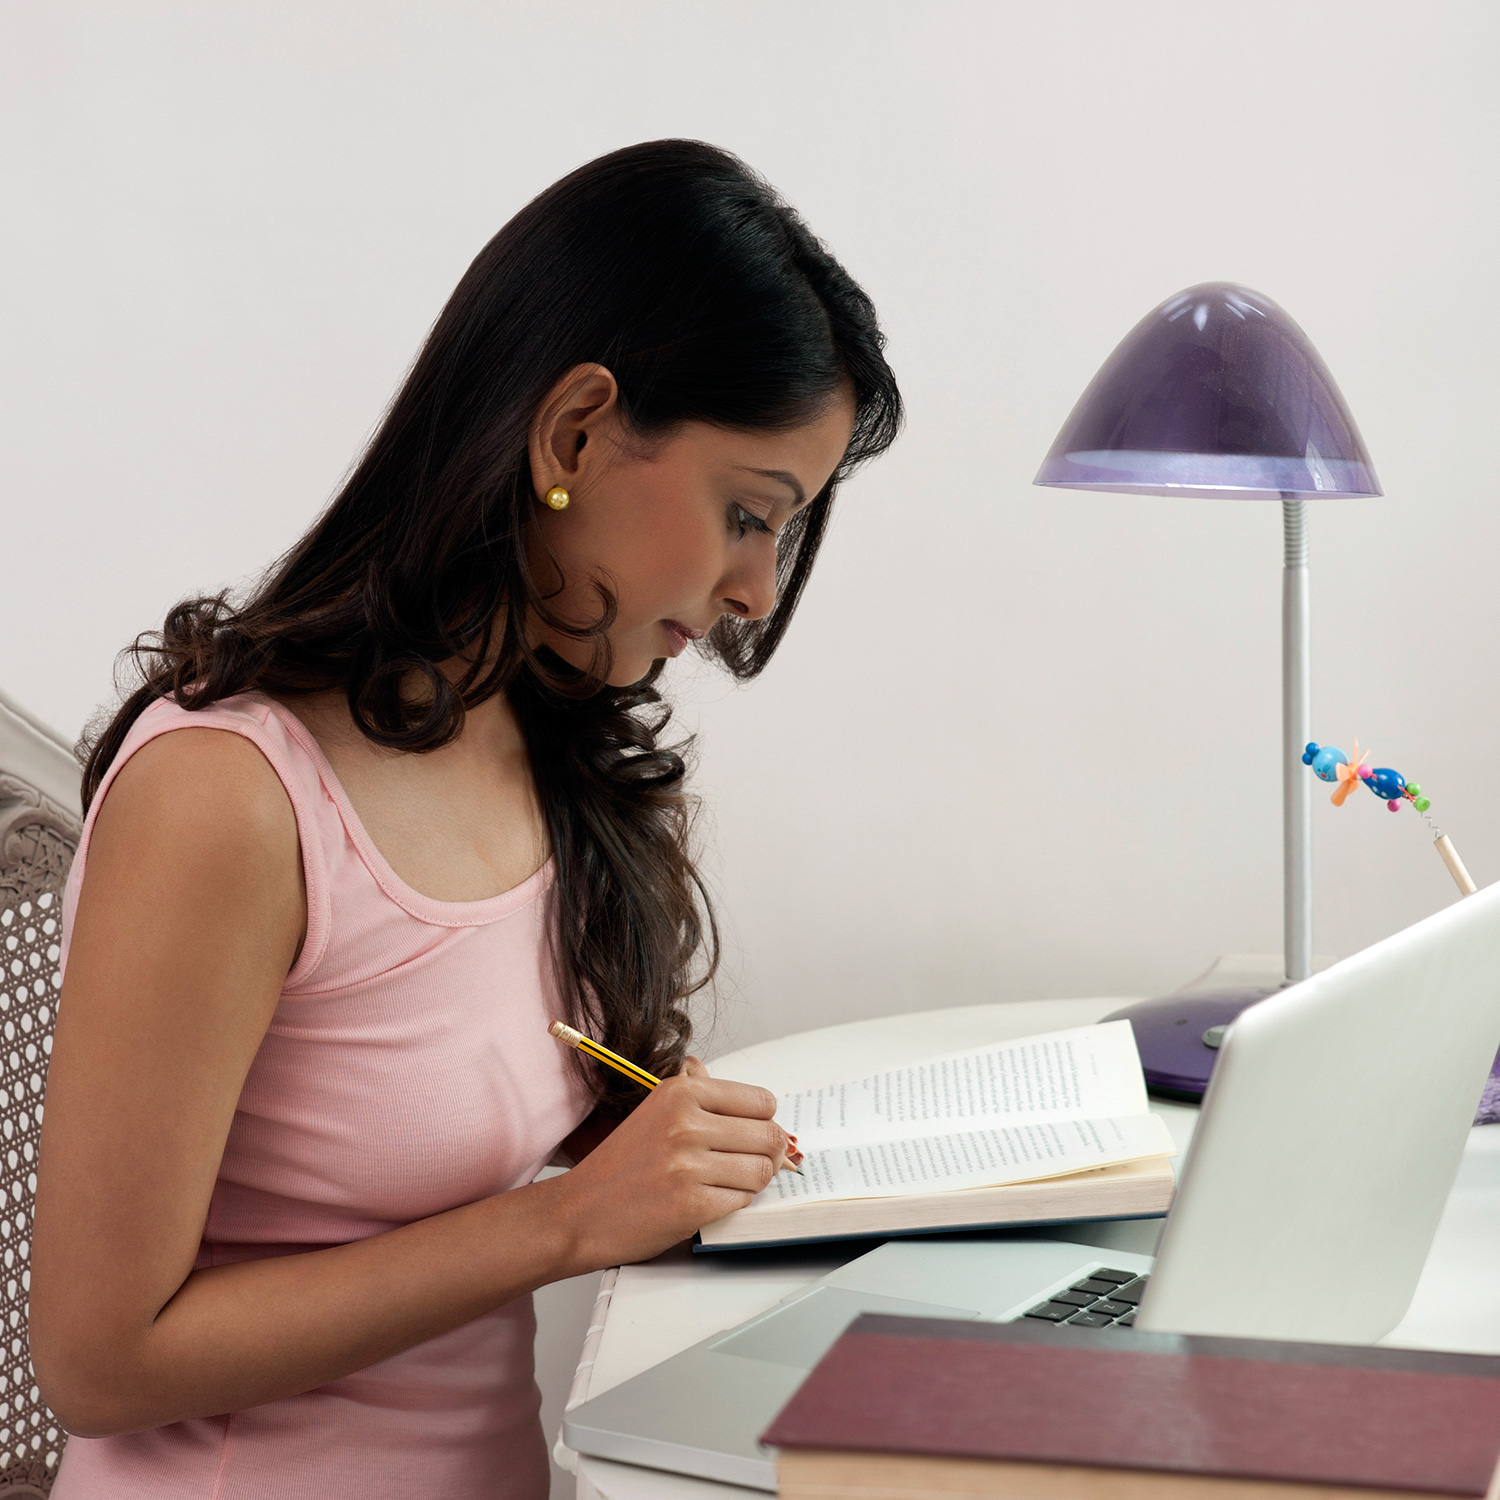 woman-studying-reading-work-computer-book